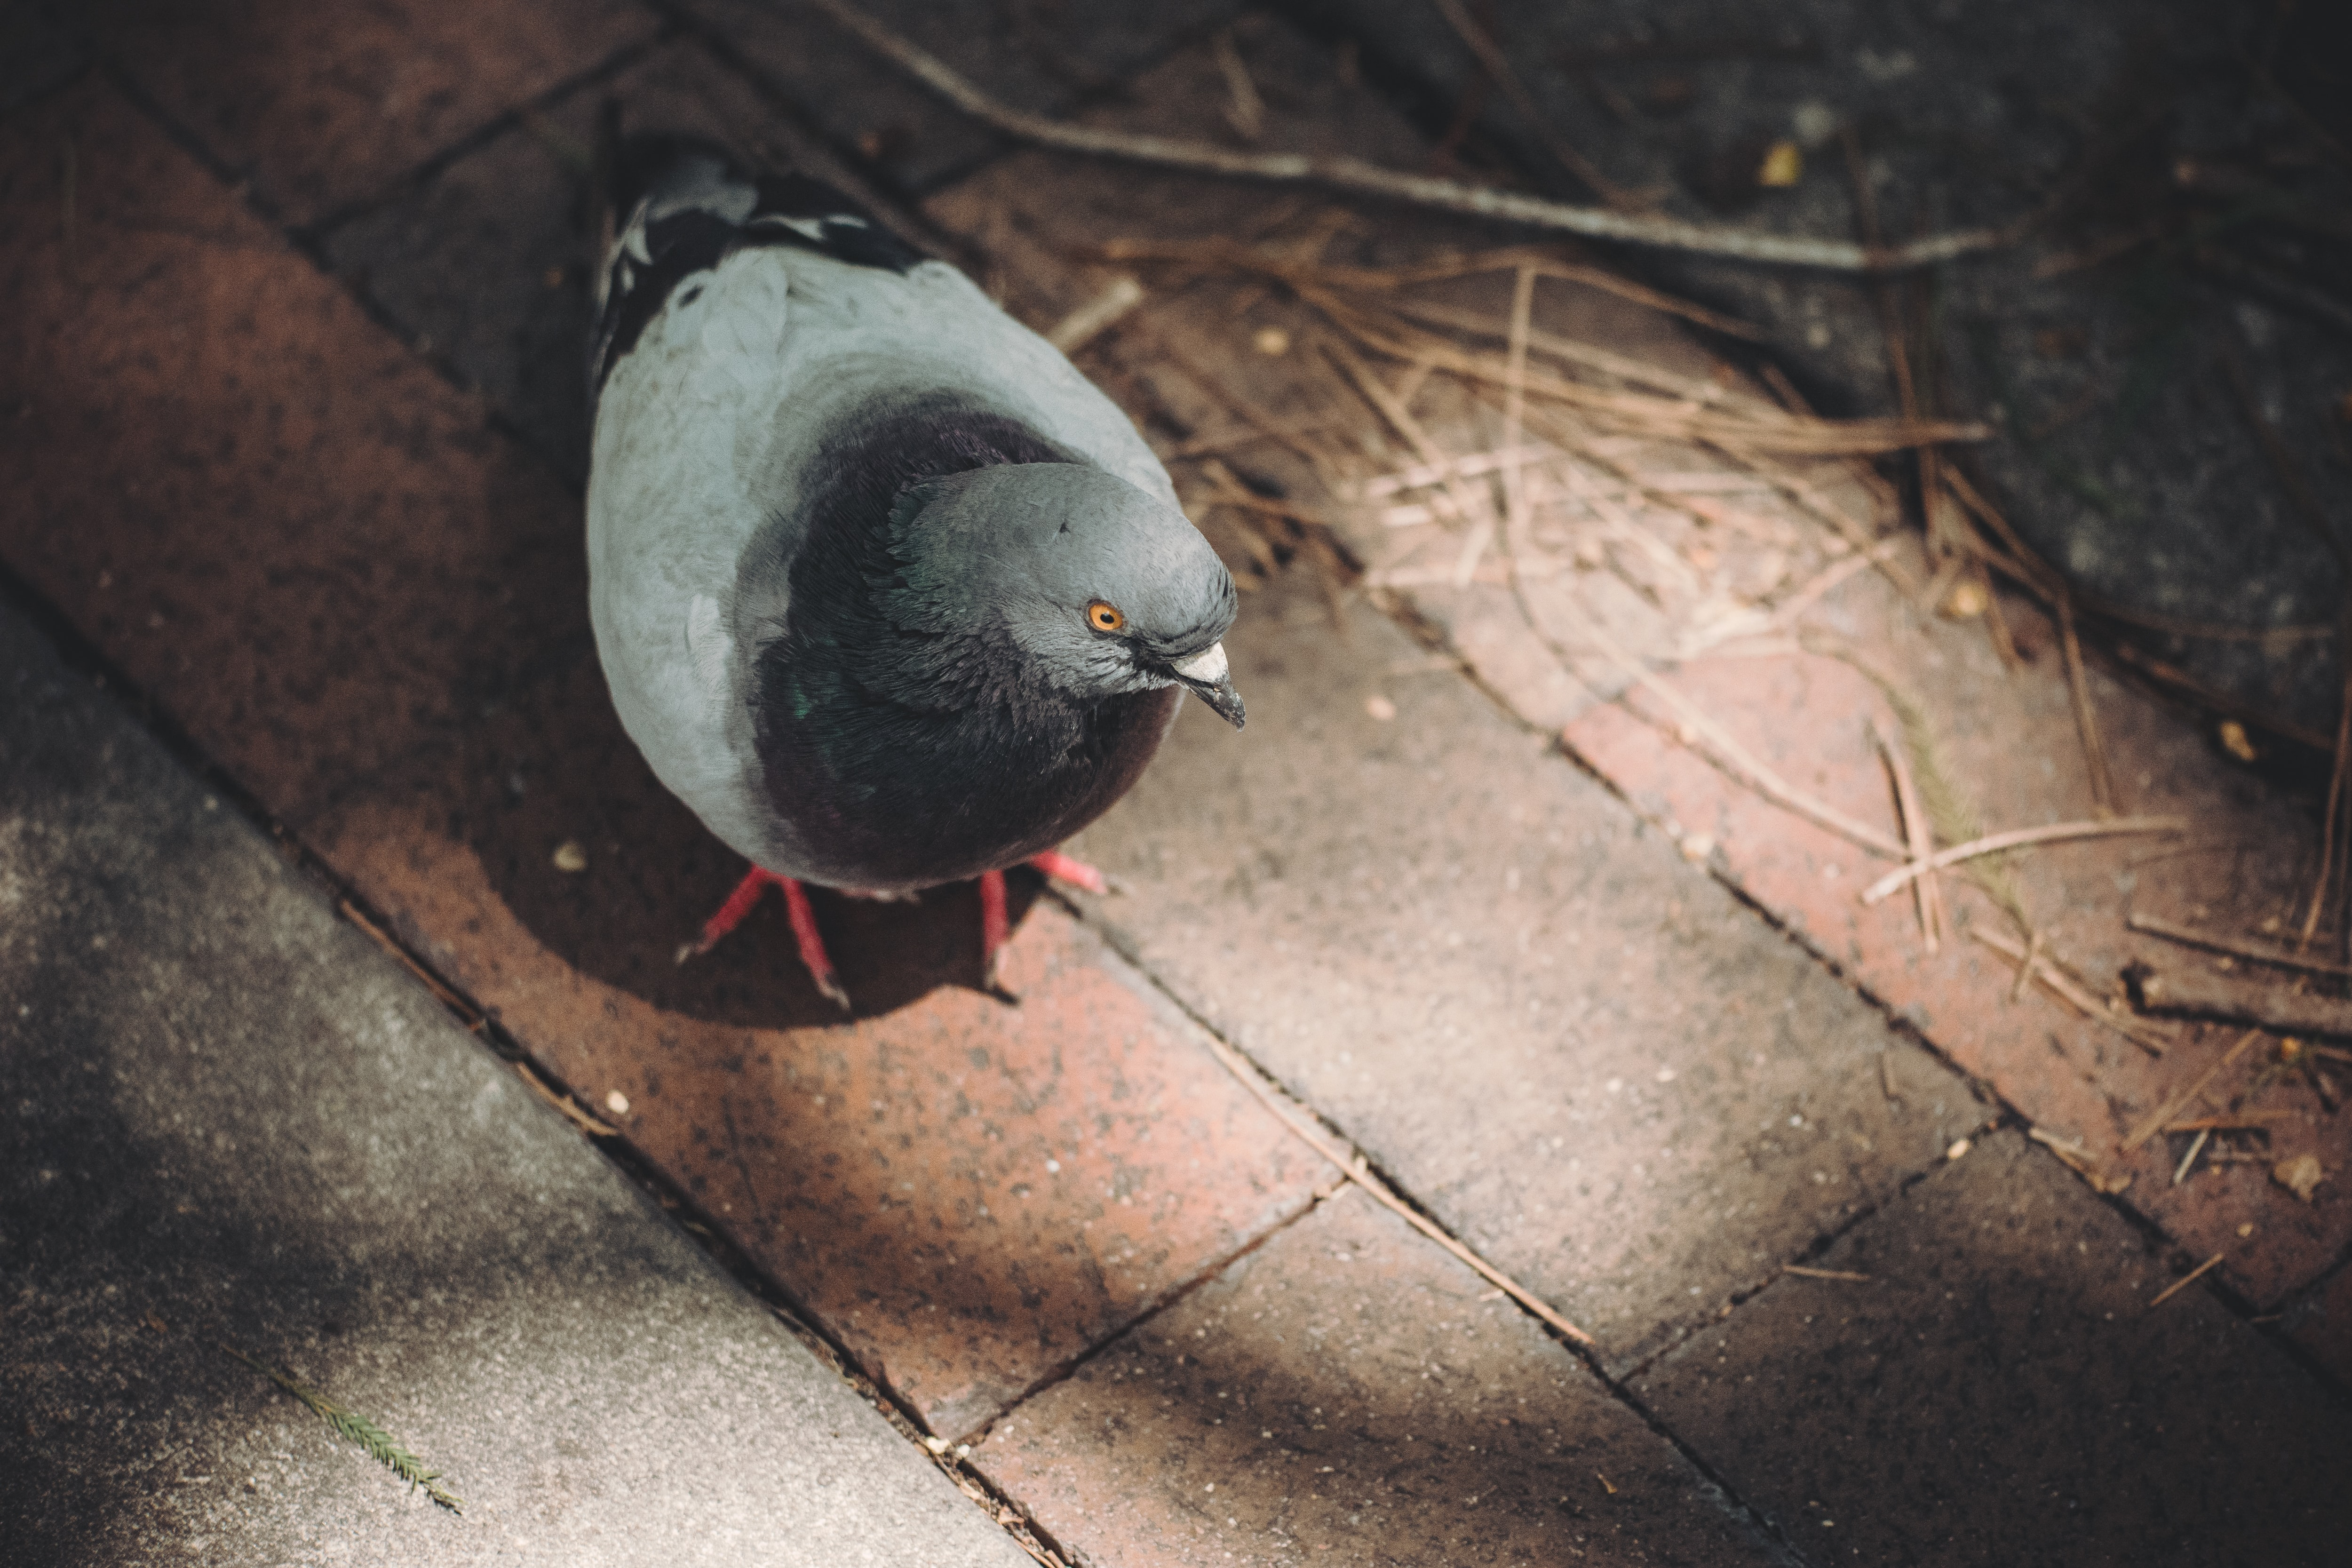 A pigeon walking around a brick floor with dried leaves and twigs